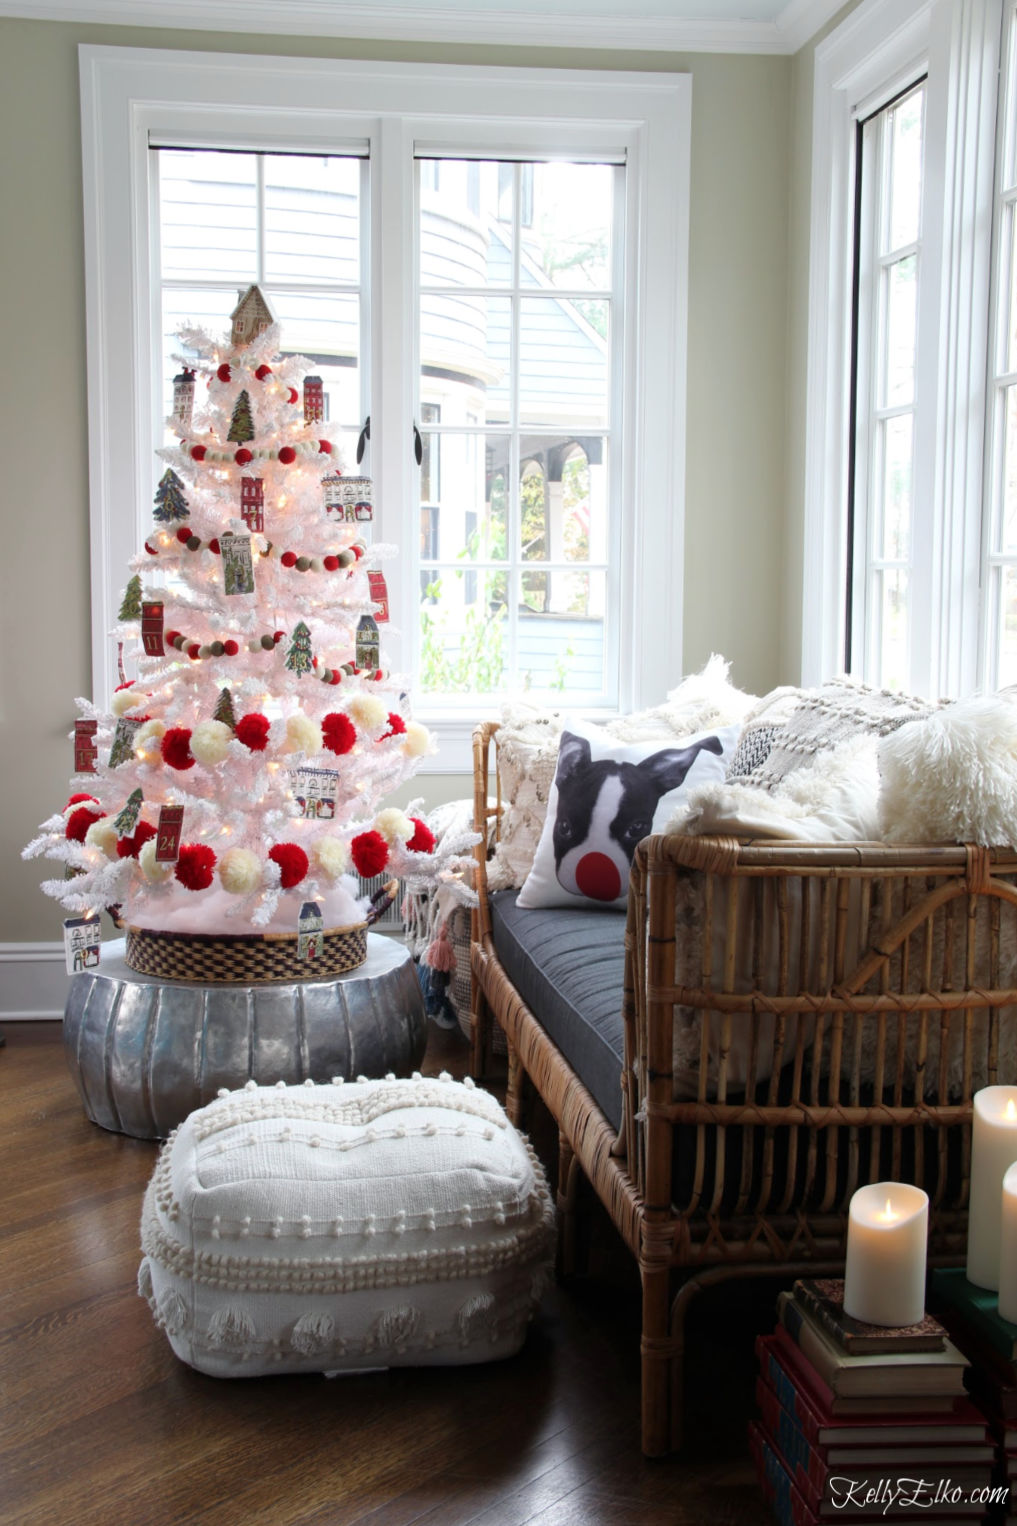 Love this sunroom decked out with a flocked white Christmas tree covered in red and white pom pom garland and Advent countdown ornaments kellyelko.com #sunroom #christmassunroom #rattan #daybed #pouf #christmasdecor #christmastree #christmasornaments #christmasdecorations #diychristmasideas #flockedtree #cozychristmas